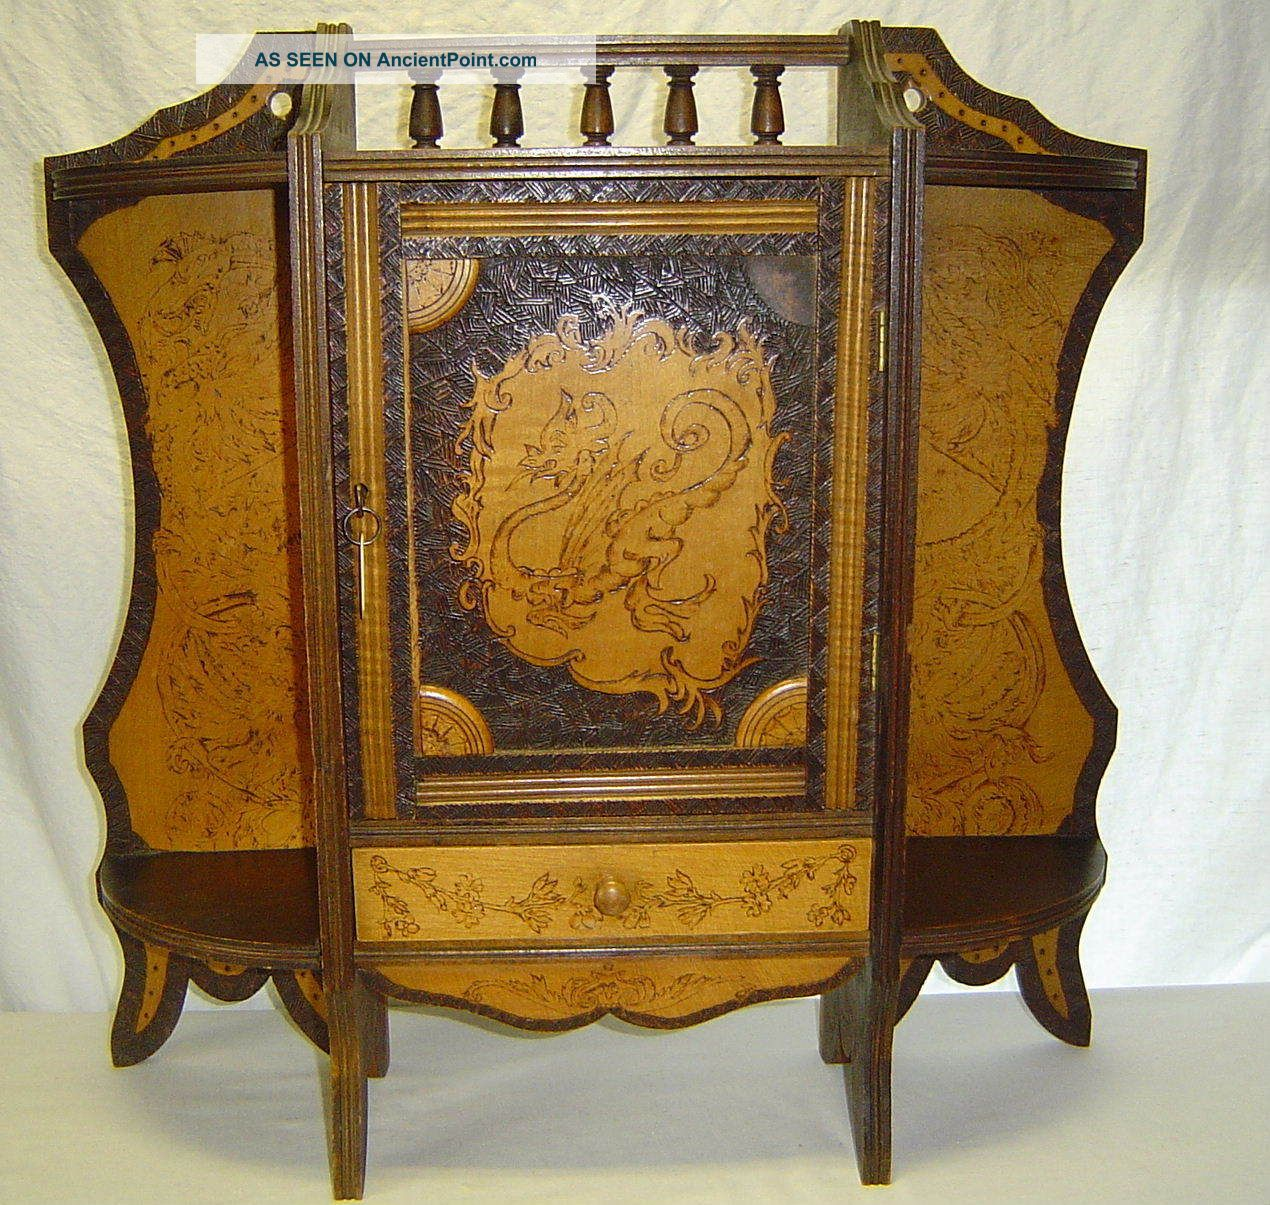 Antique Dragon Motif Pyrography Wall Hanging Cabinet Cupboard W/ Key Wood  Wooden